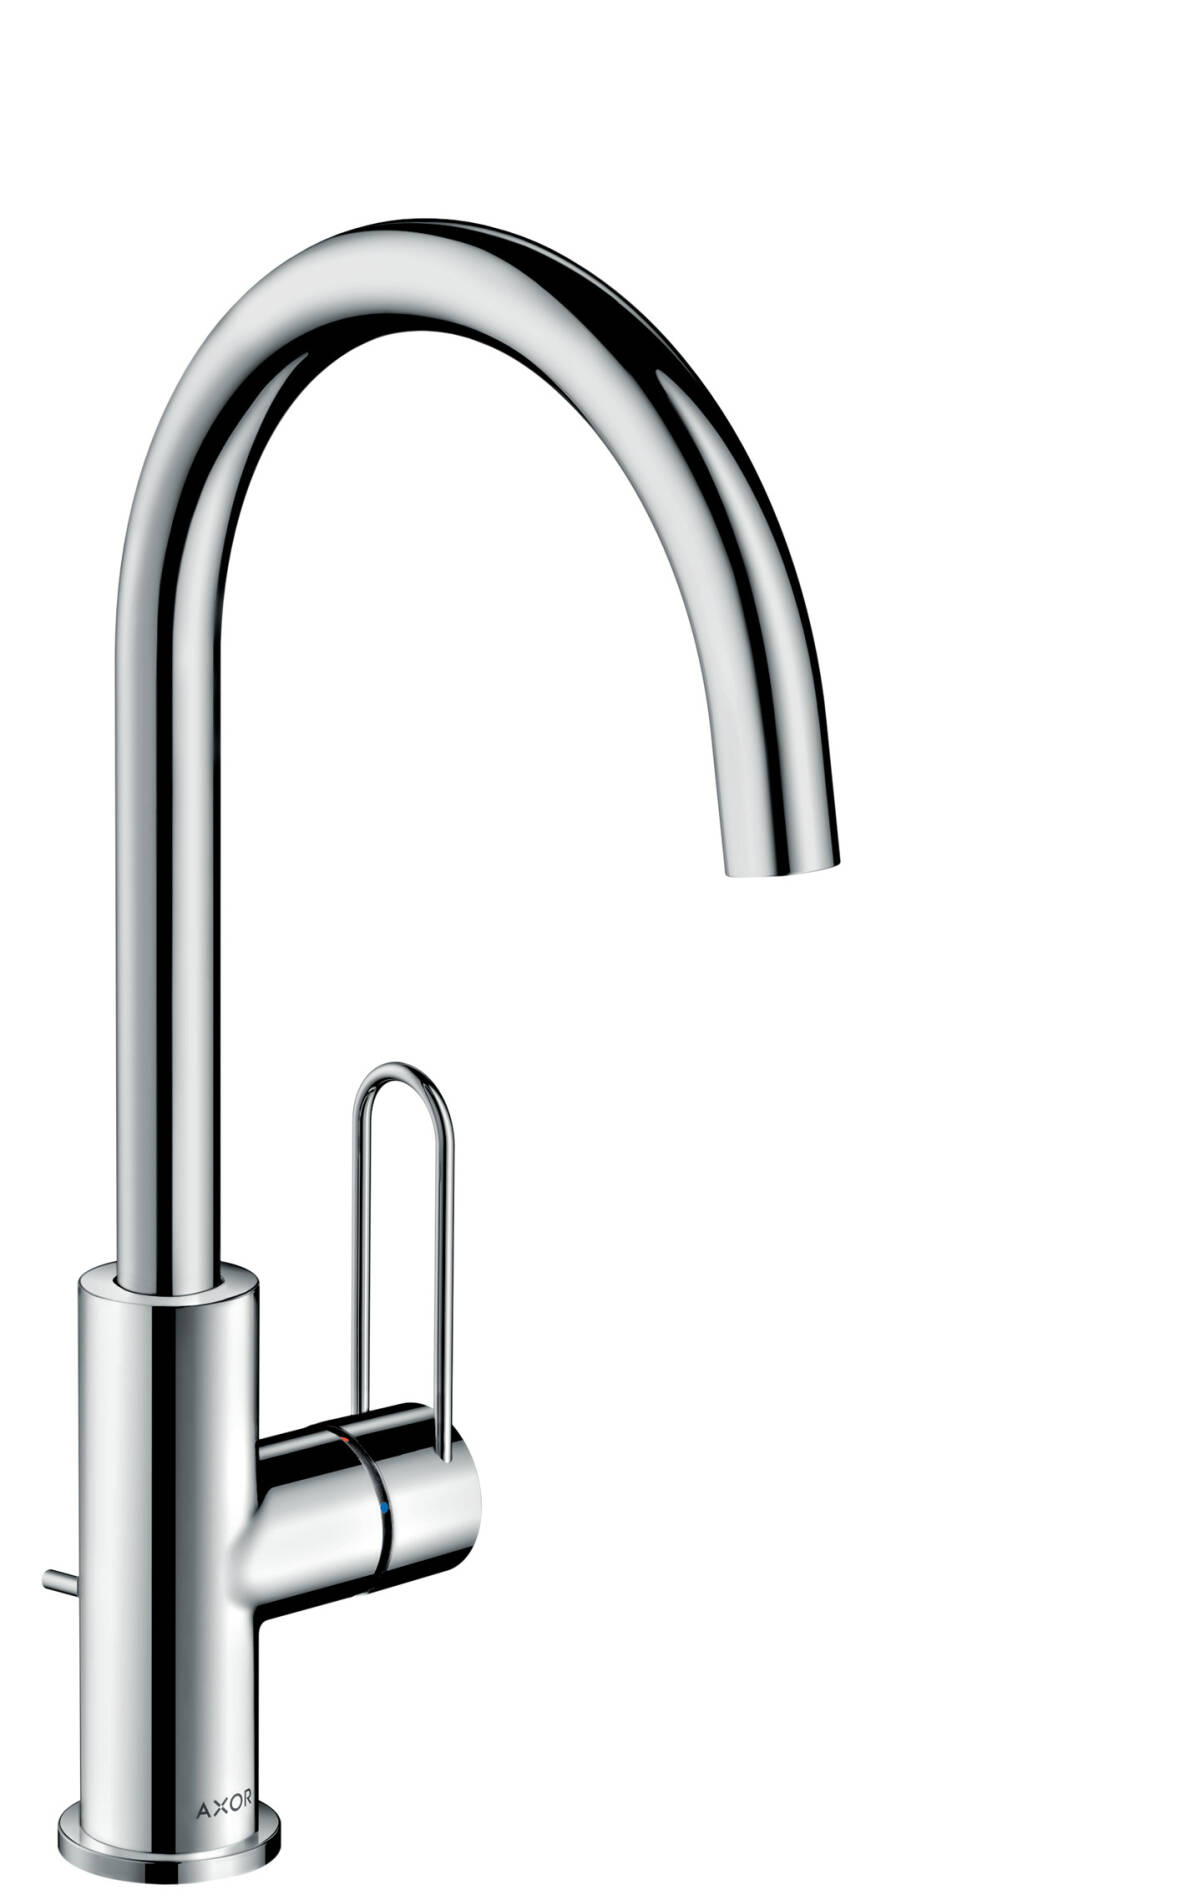 Single lever basin mixer 240 loop handle with pop-up waste set, Chrome, 38036000